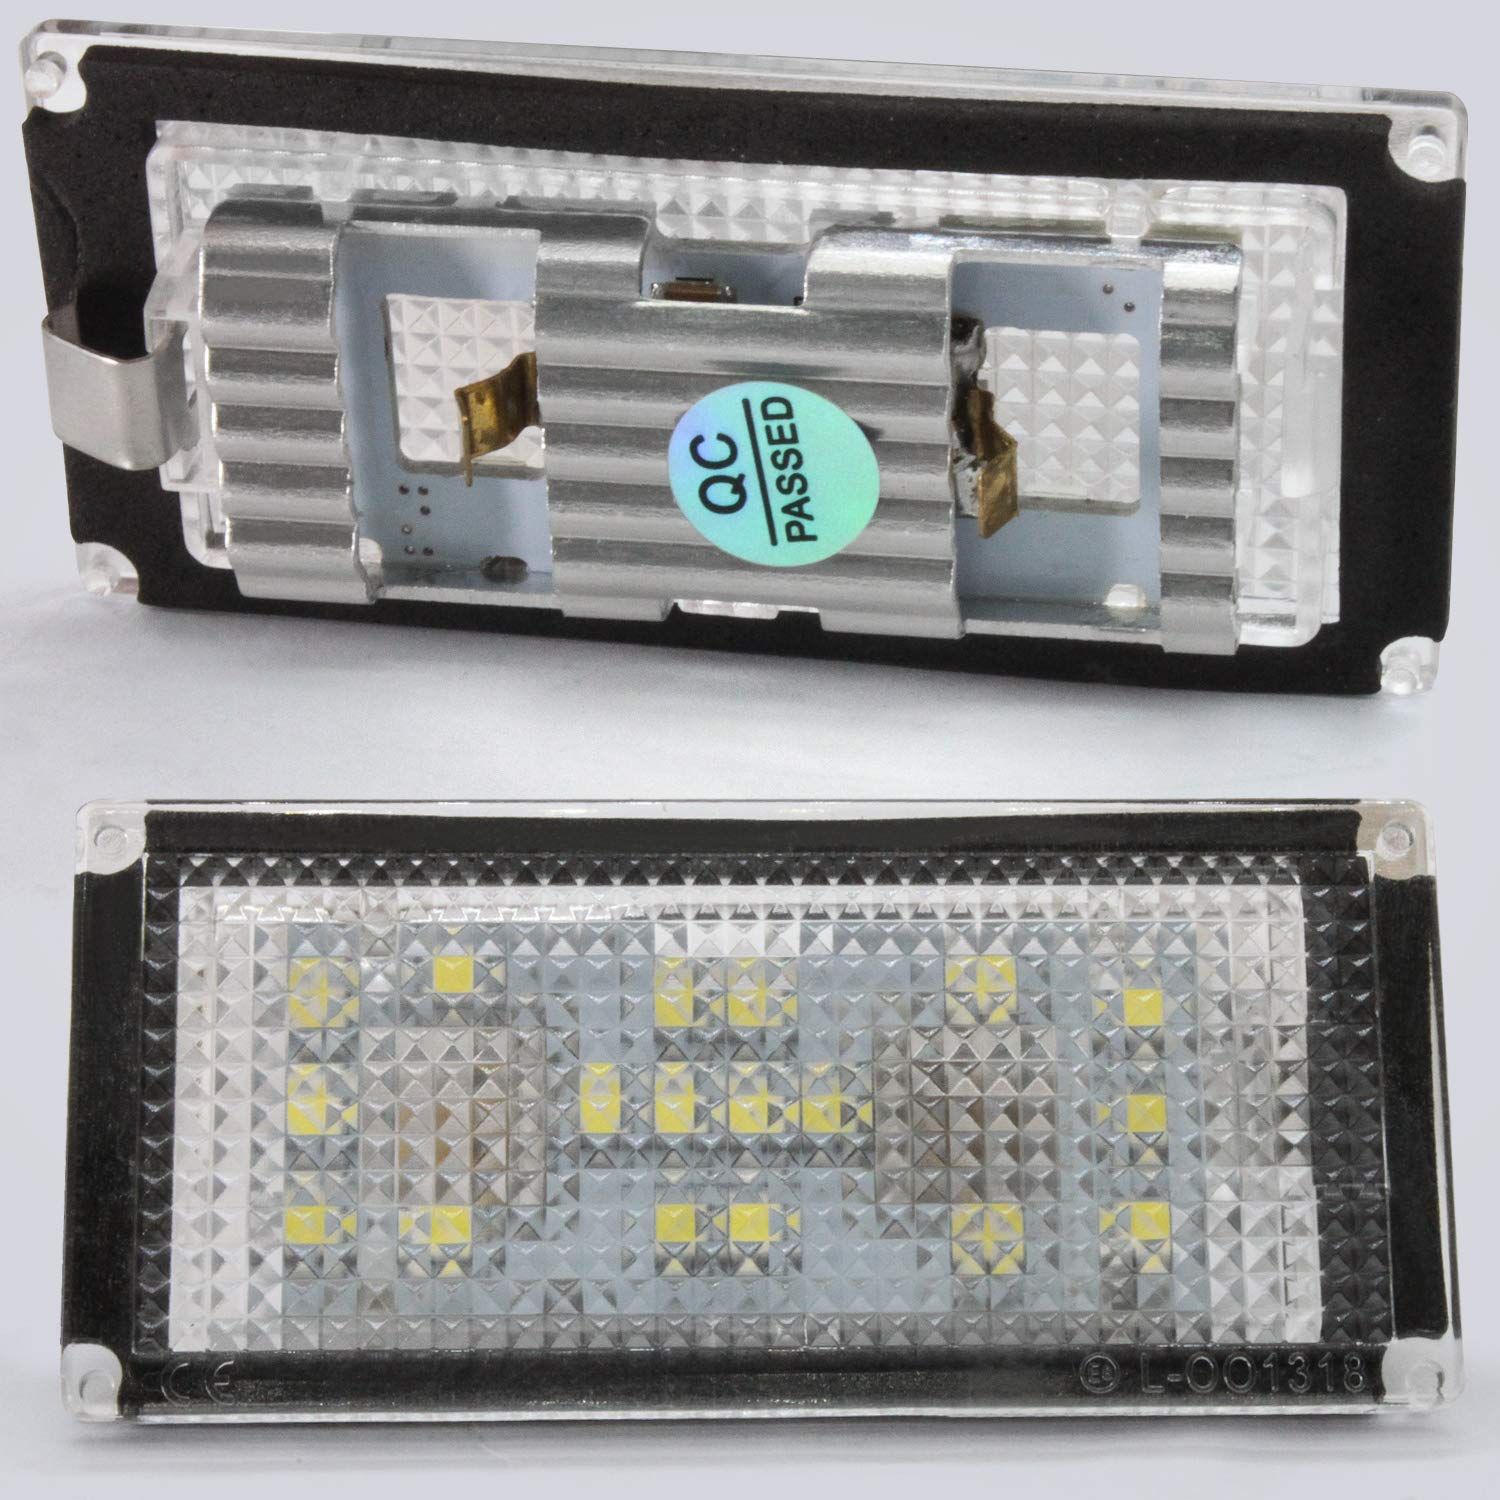 Ourbest License Plate Light 18-SMD LED Tail Rear Lamp With CANBUS Free Error Waterproof 12V 6000K White Fit for BMW E66 E65 7-Series 735i 2 pcs LED License Plate Lamps